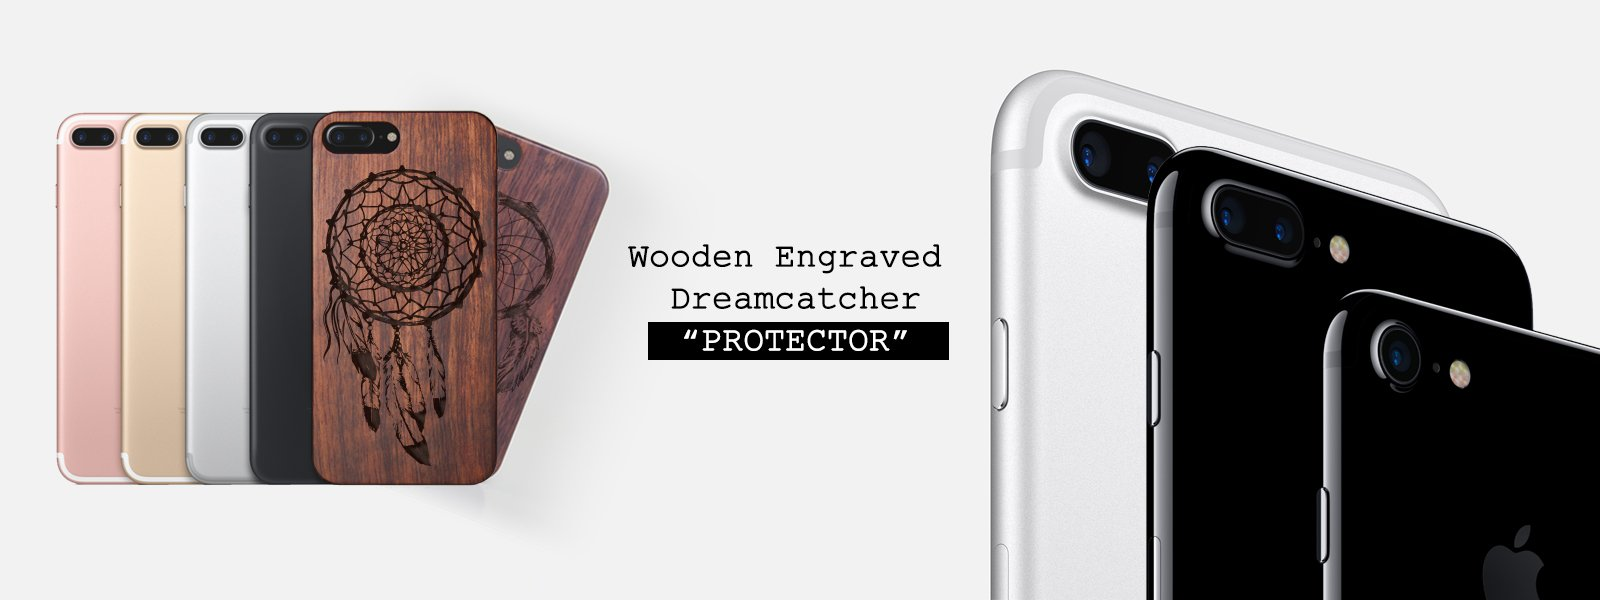 Wooden Engraved Dreamcatcher iPhone Case PROTECTOR - Dream without fear, love without limits cover